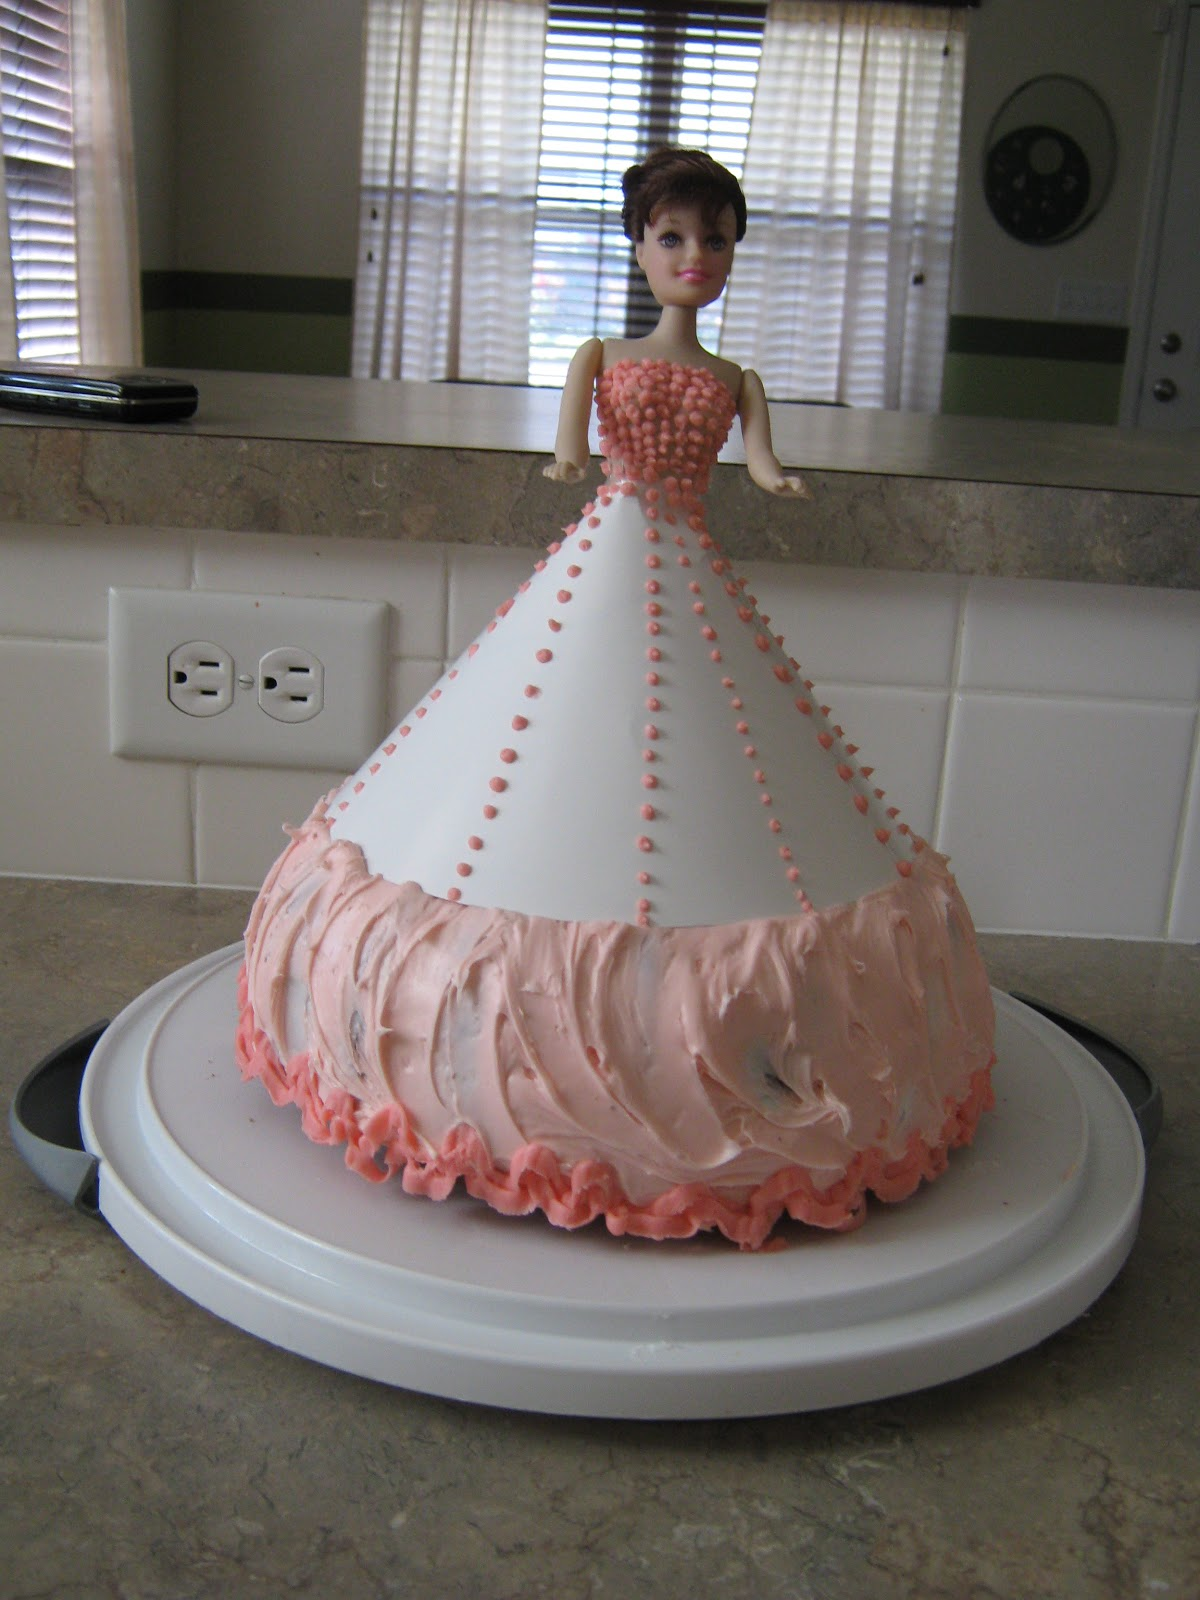 Easy Doll Cake Images : LifesLittleJoyz: Easy Doll Cake